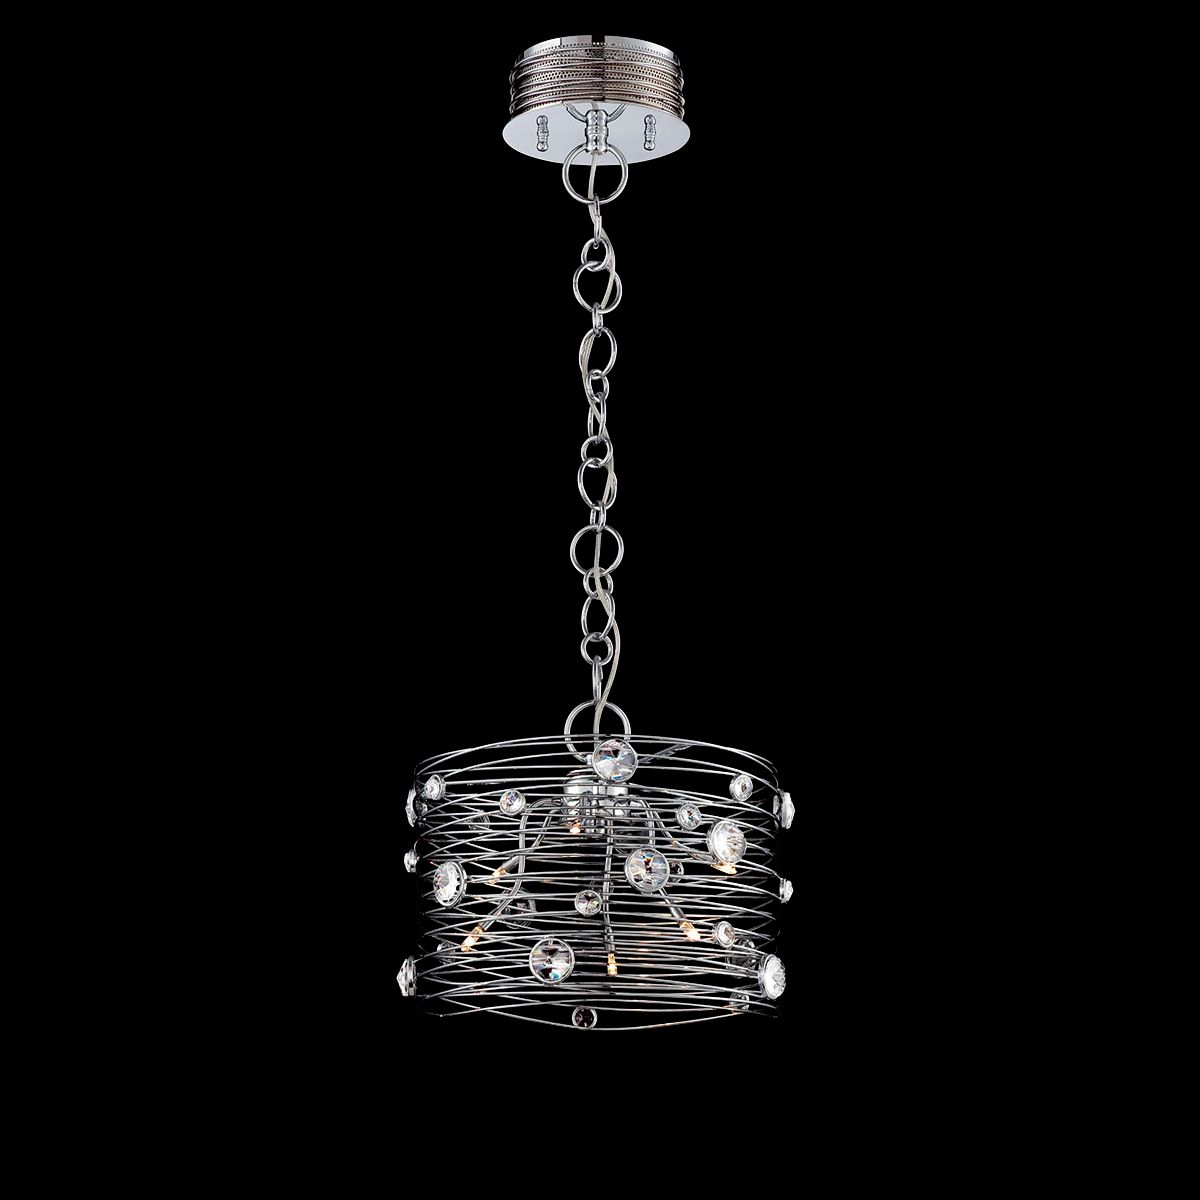 Eurofase Lighting Corfo 6 Light Chandelier